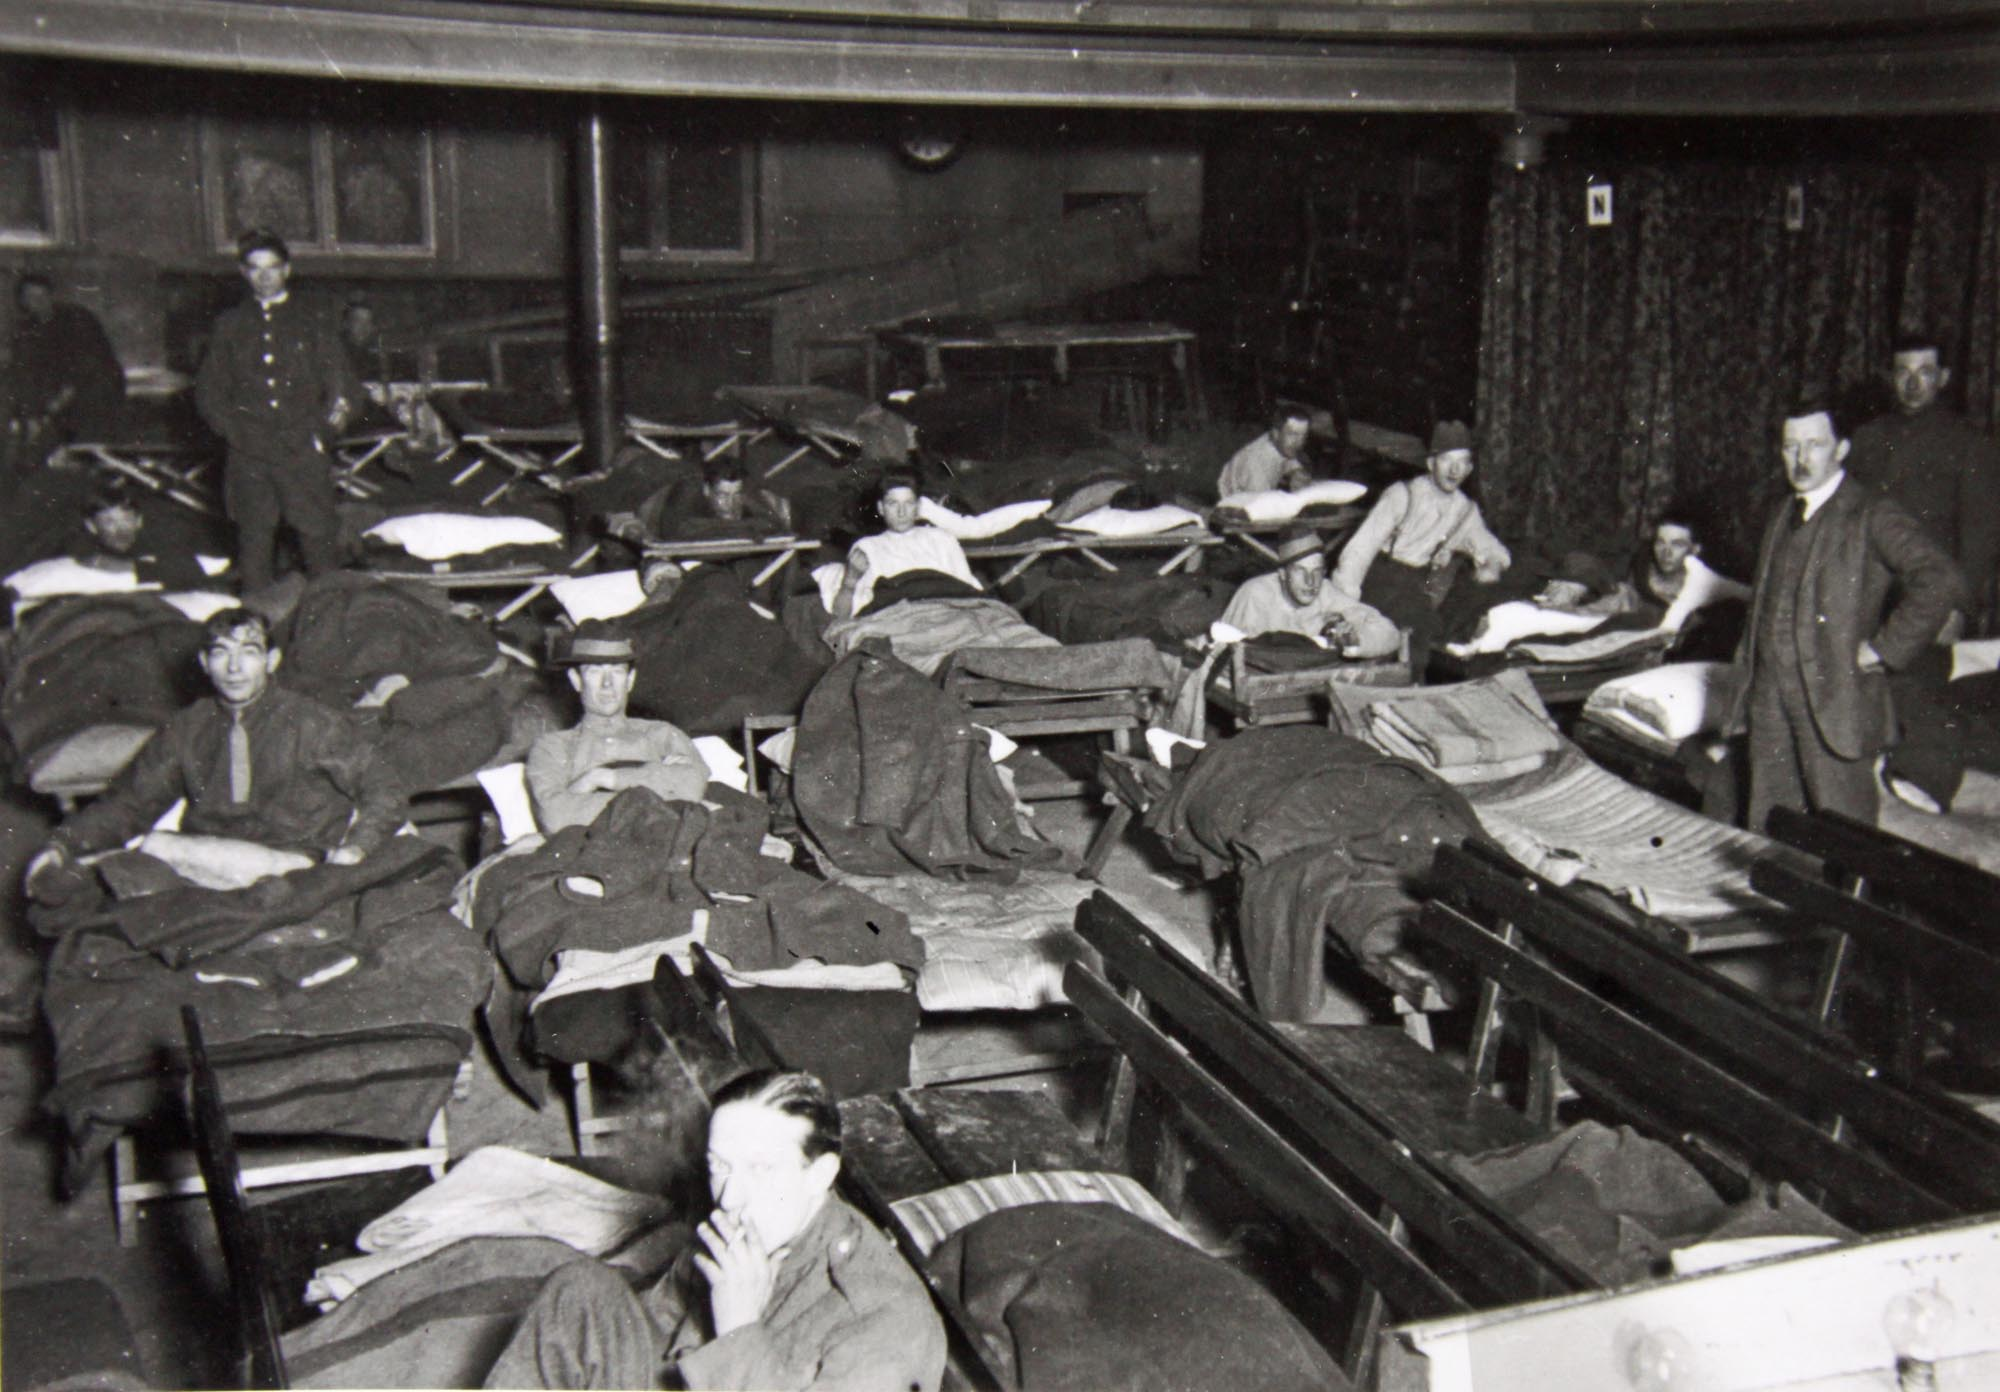 Dormitory for servicemen during WWI - Leicestershire Record Office